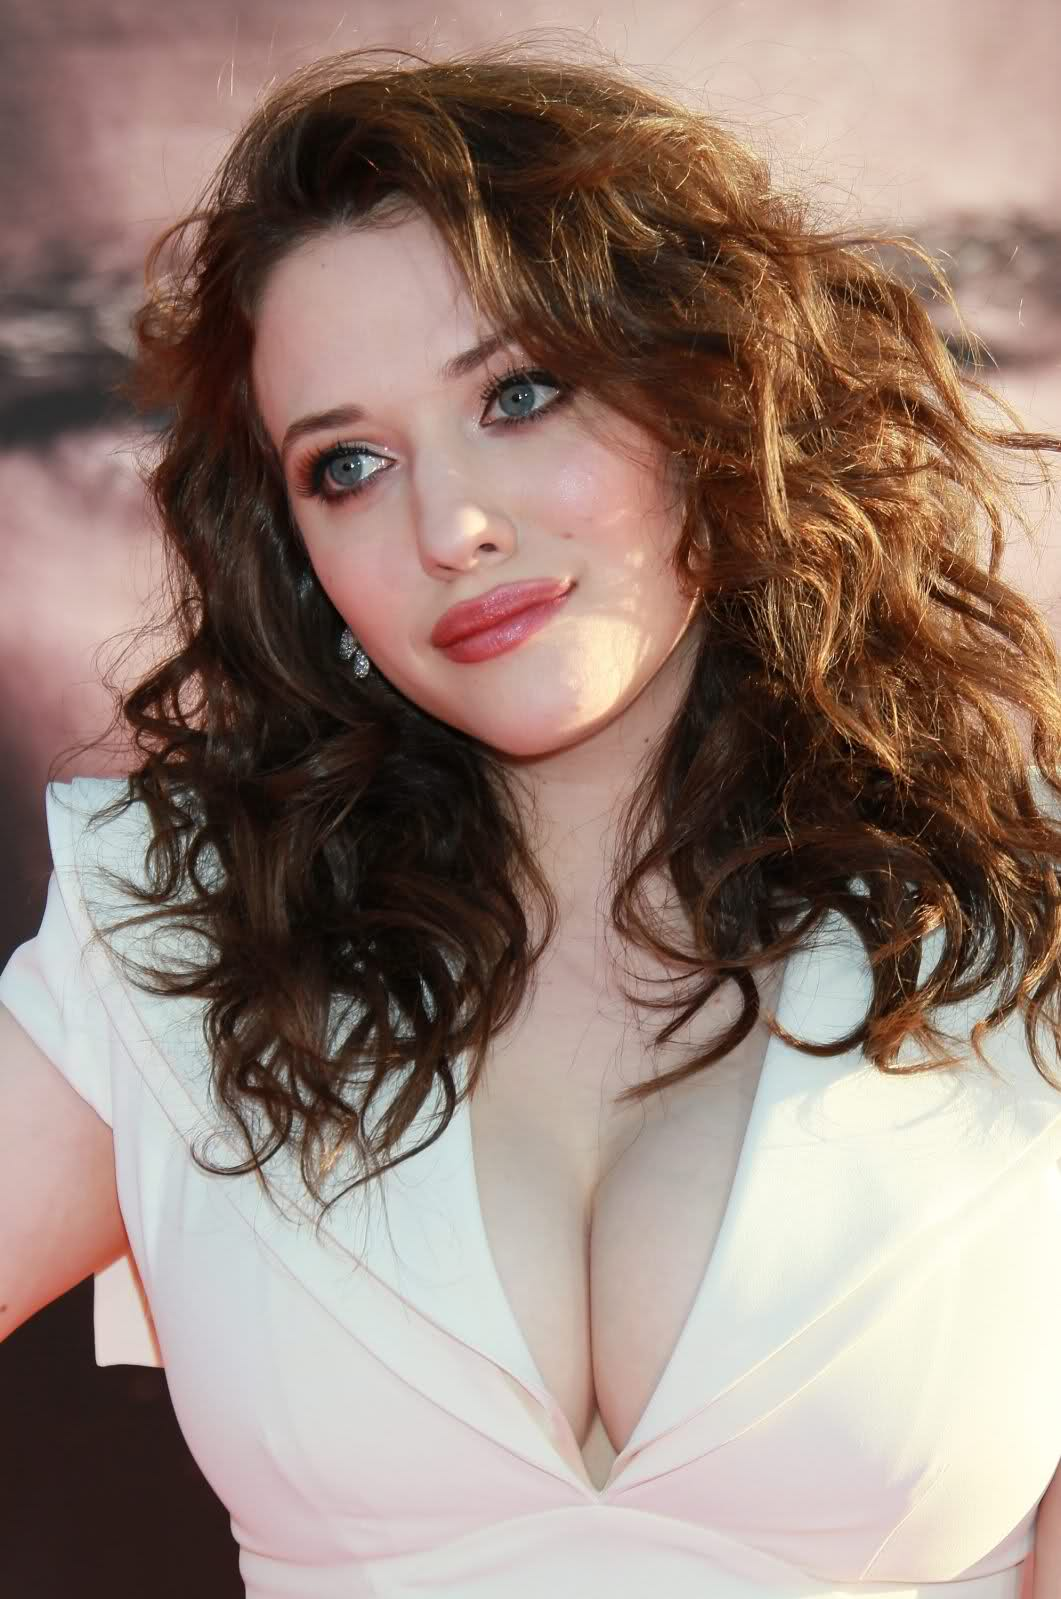 very beautifUl kat dennings